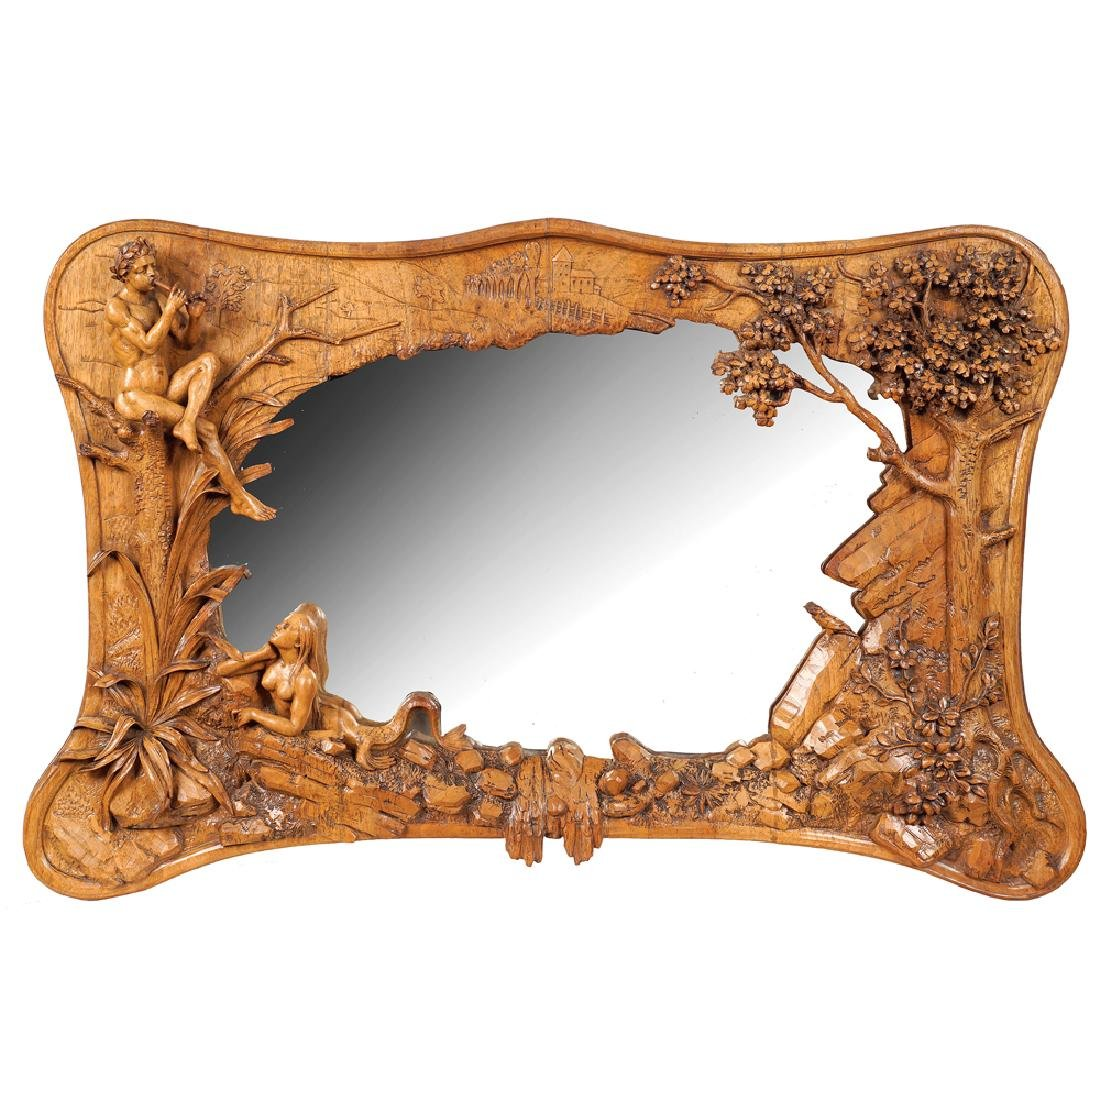 A lime wood wall mirror France 1900 50x85 cm.